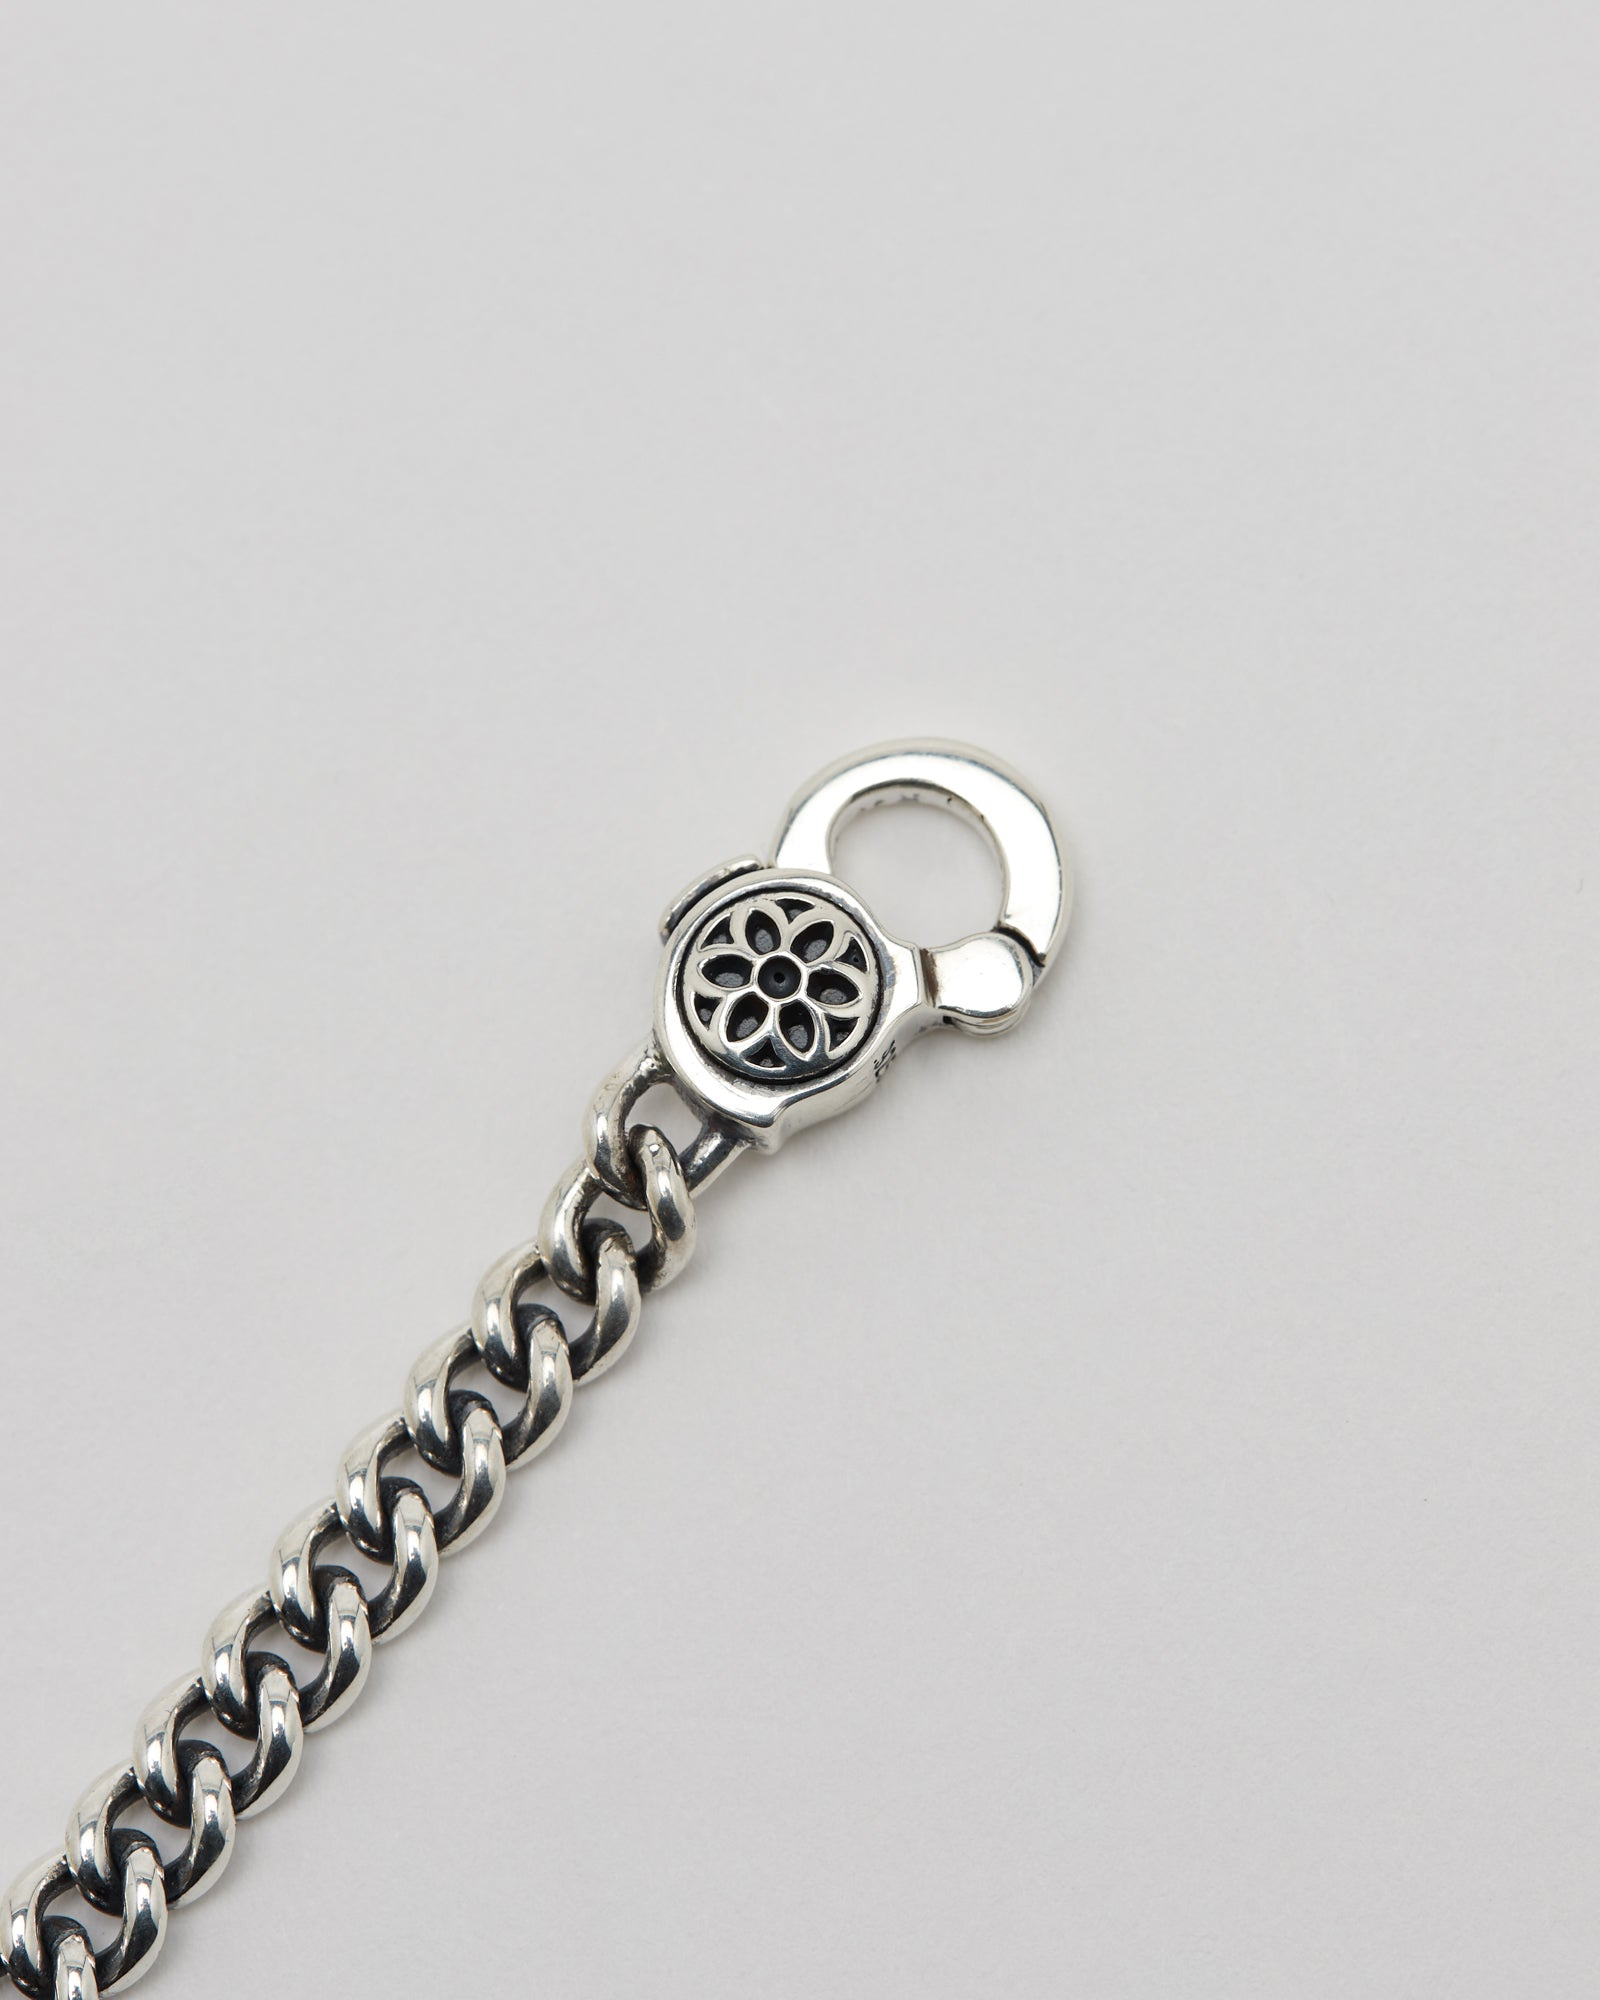 Tea Cakes (Shazam) Bracelet in Sterling, 17cm